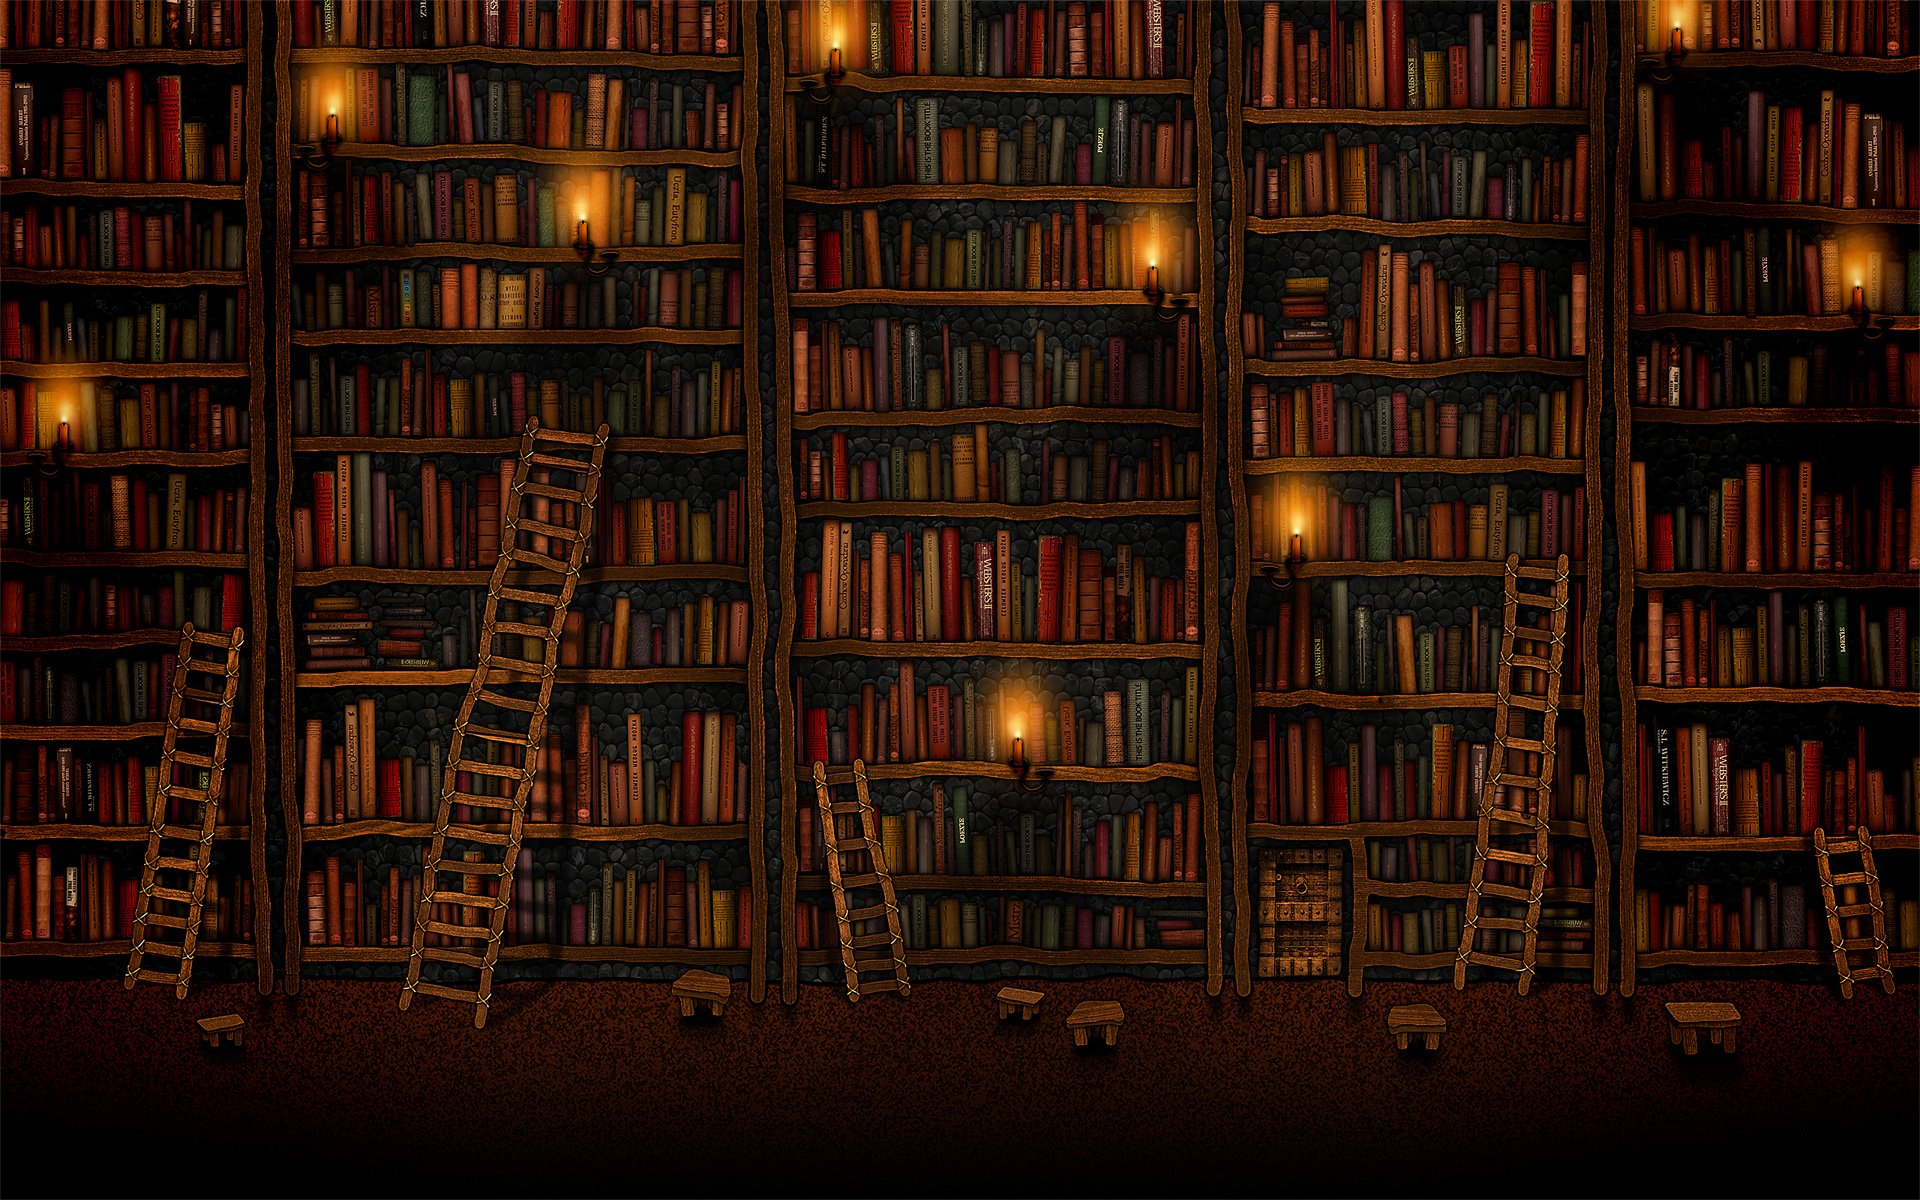 193 Book Hd Wallpapers Background Images Wallpaper Abyss